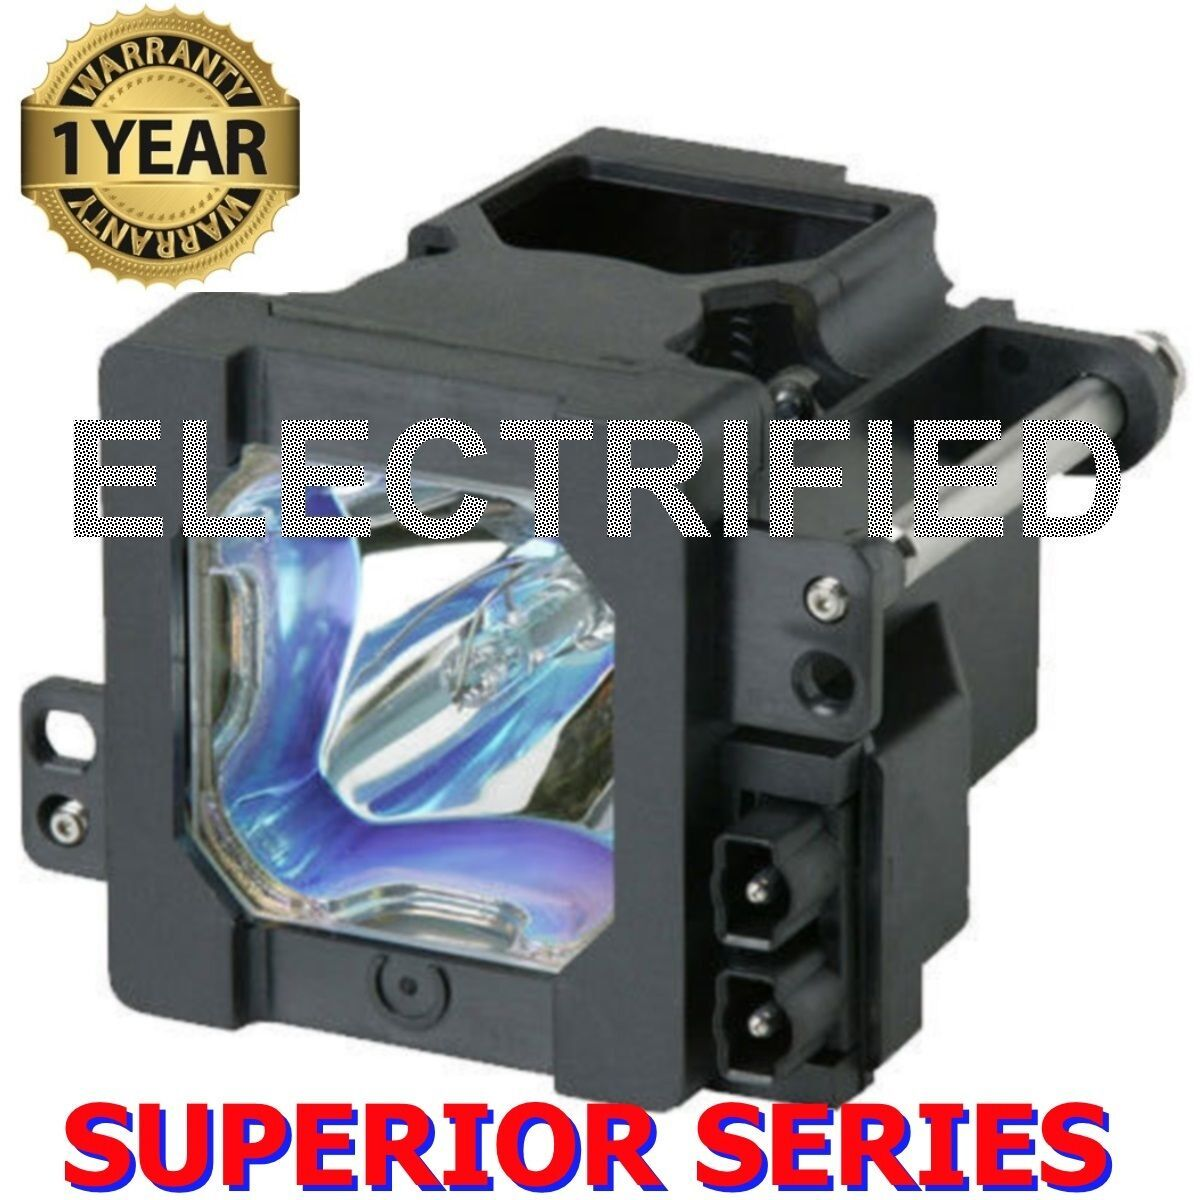 JVC TS-CL110UAA TSCL110UAA SUPERIOR SERIES LAMP-NEW & IMPROVED FOR HD-61Z575PA - $59.95